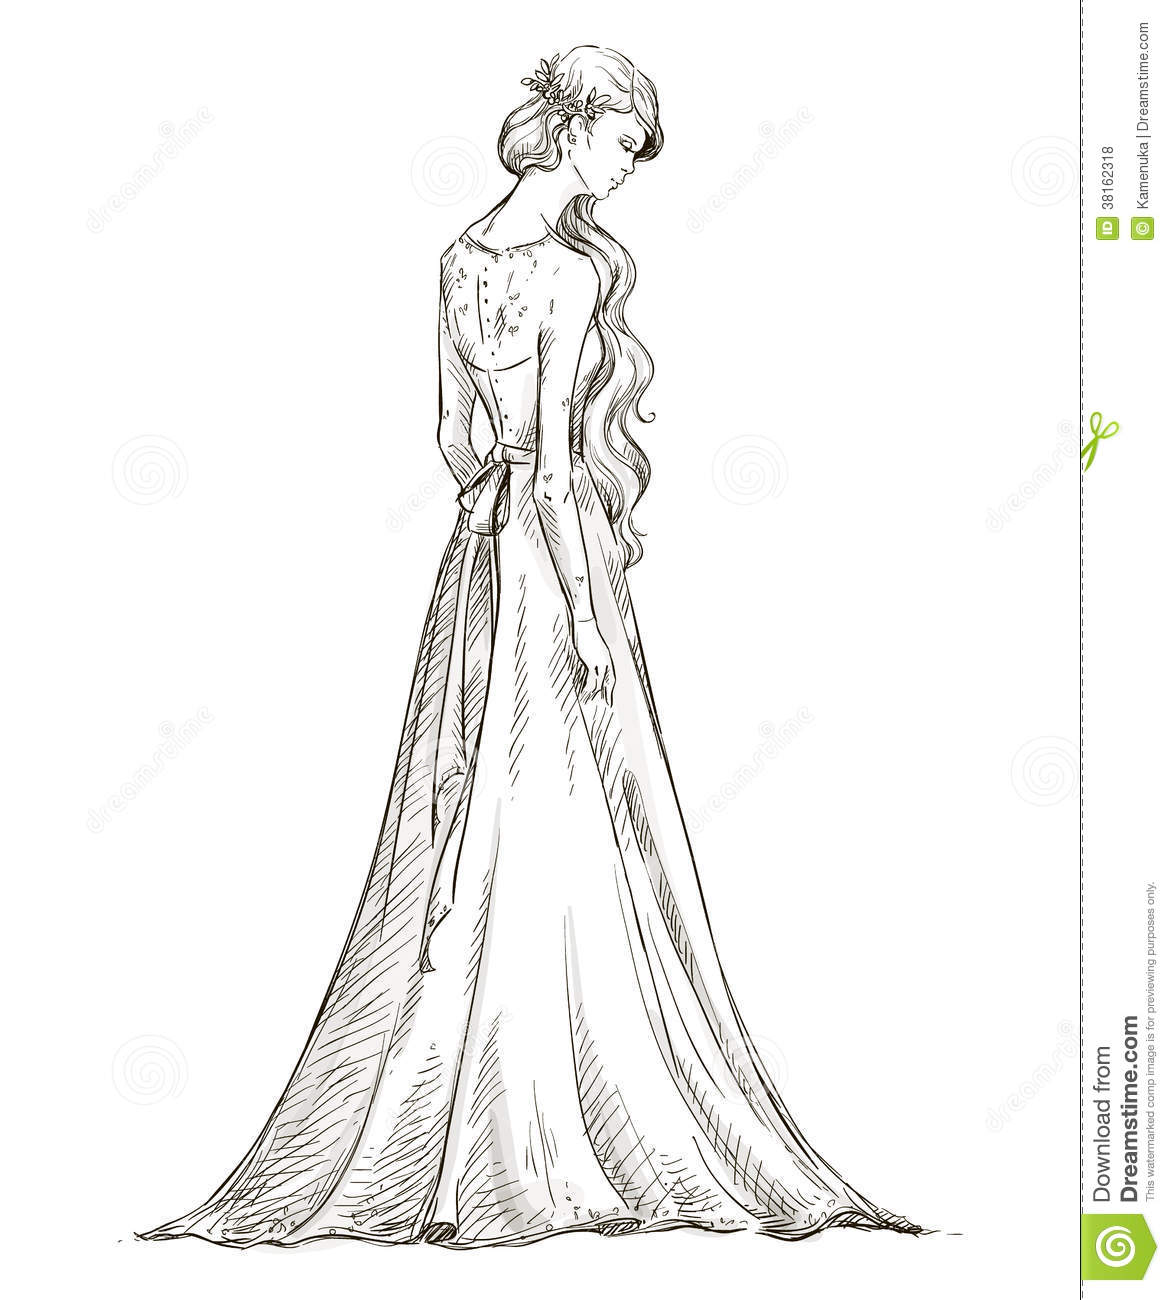 Beautiful Girl With Long Hair Bride Bridal Dress Royalty - Fashion Dress Sketches Black And White